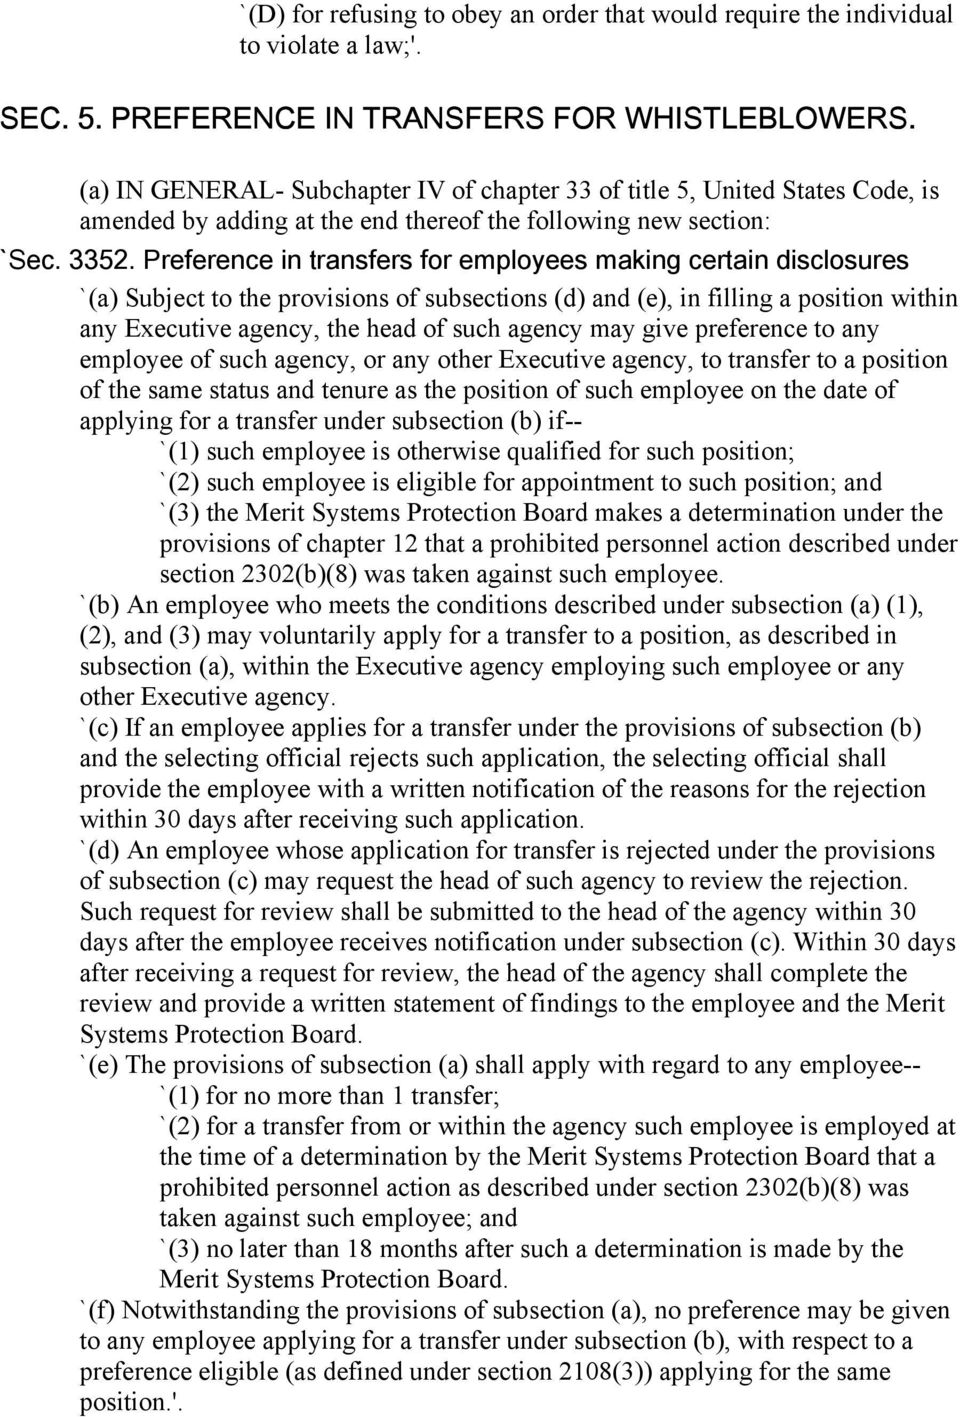 Preference in transfers for employees making certain disclosures `(a) Subject to the provisions of subsections (d) and (e), in filling a position within any Executive agency, the head of such agency